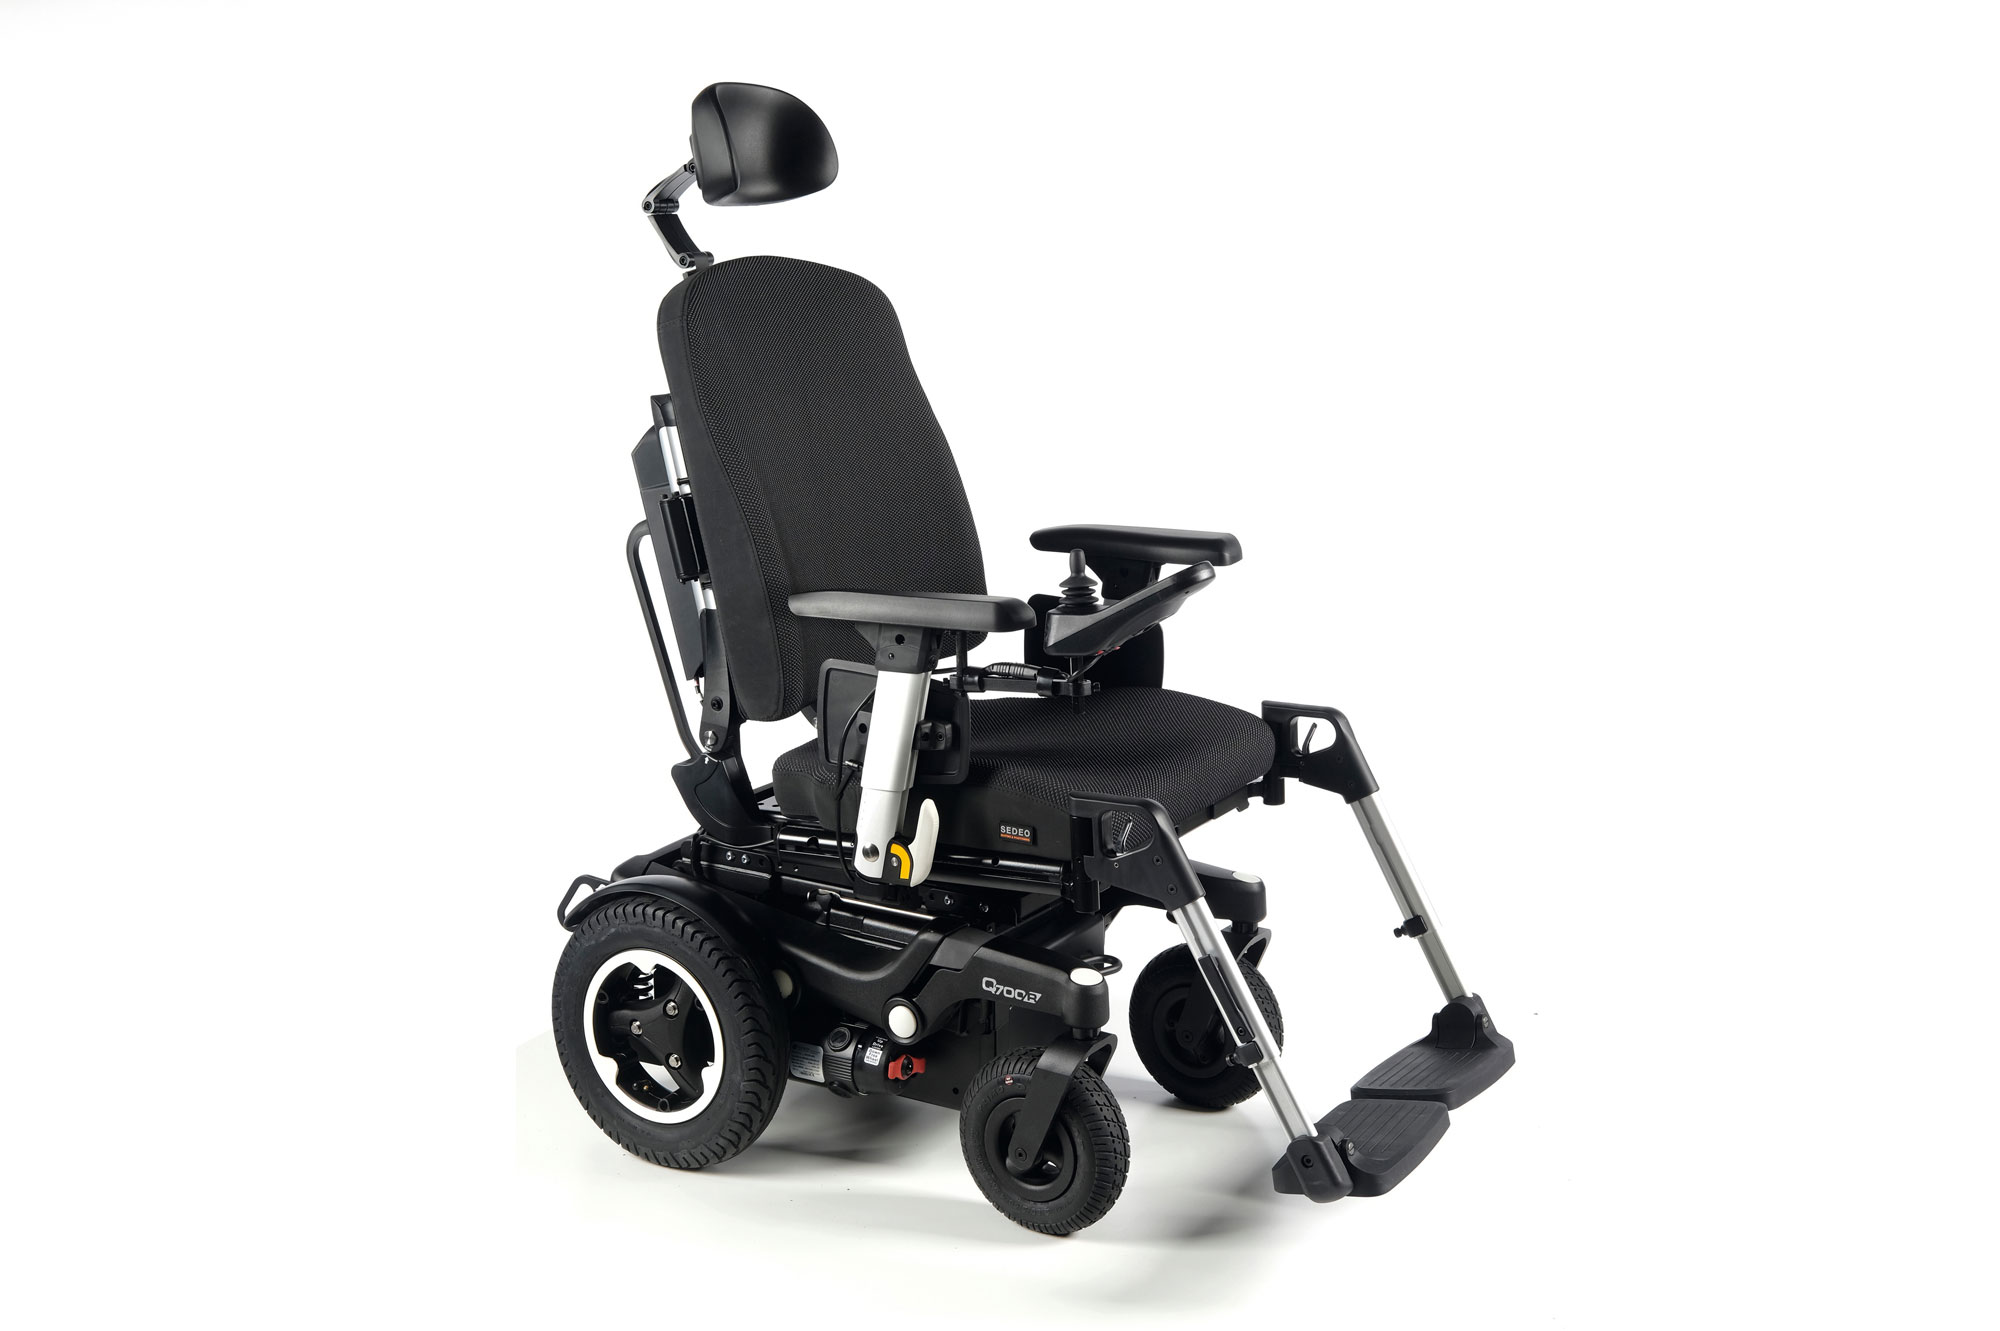 Quickie Q700 R SEDEO PRO Rear-Wheel Powered Wheelchair